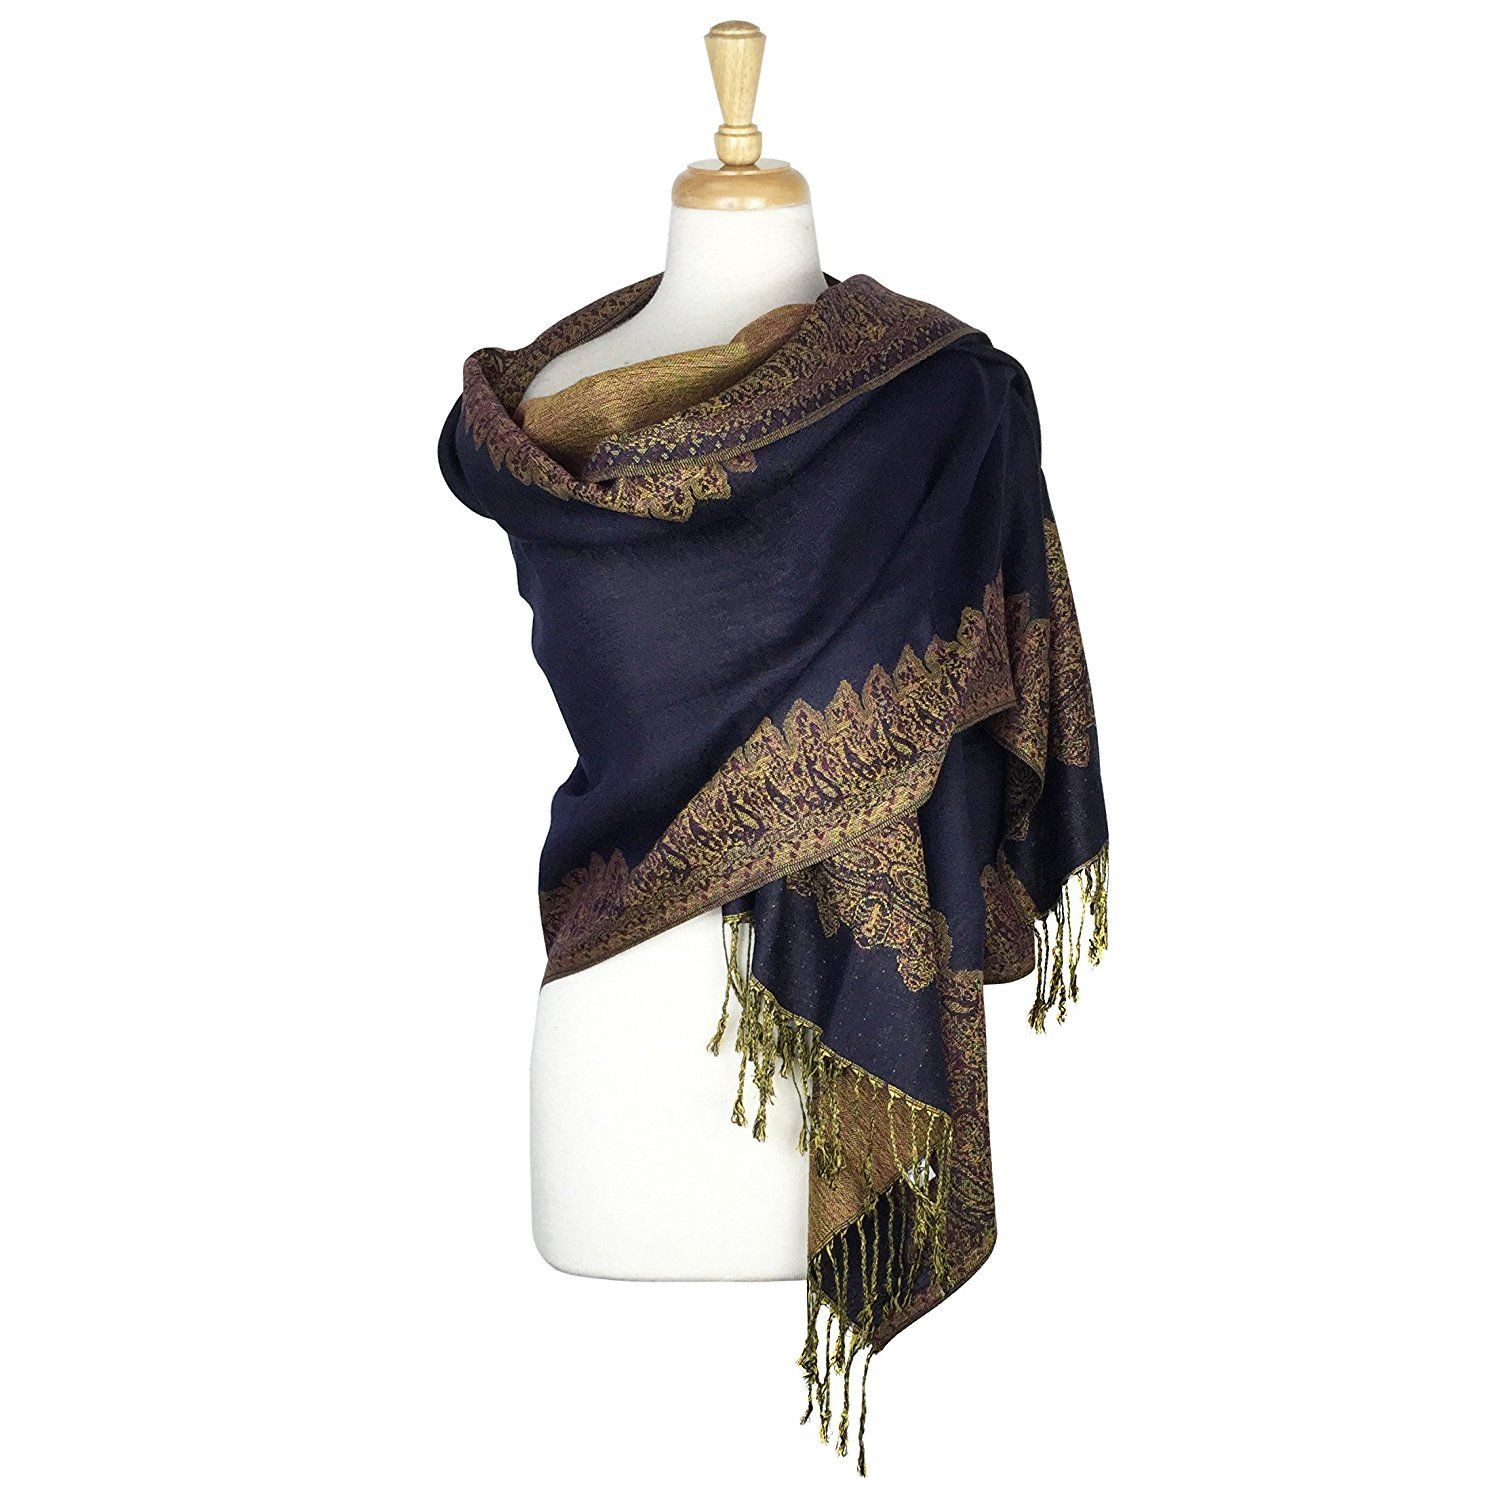 Border Pattern Double Layered Reversible Woven Pashmina Shawl Scarf Wrap Stole